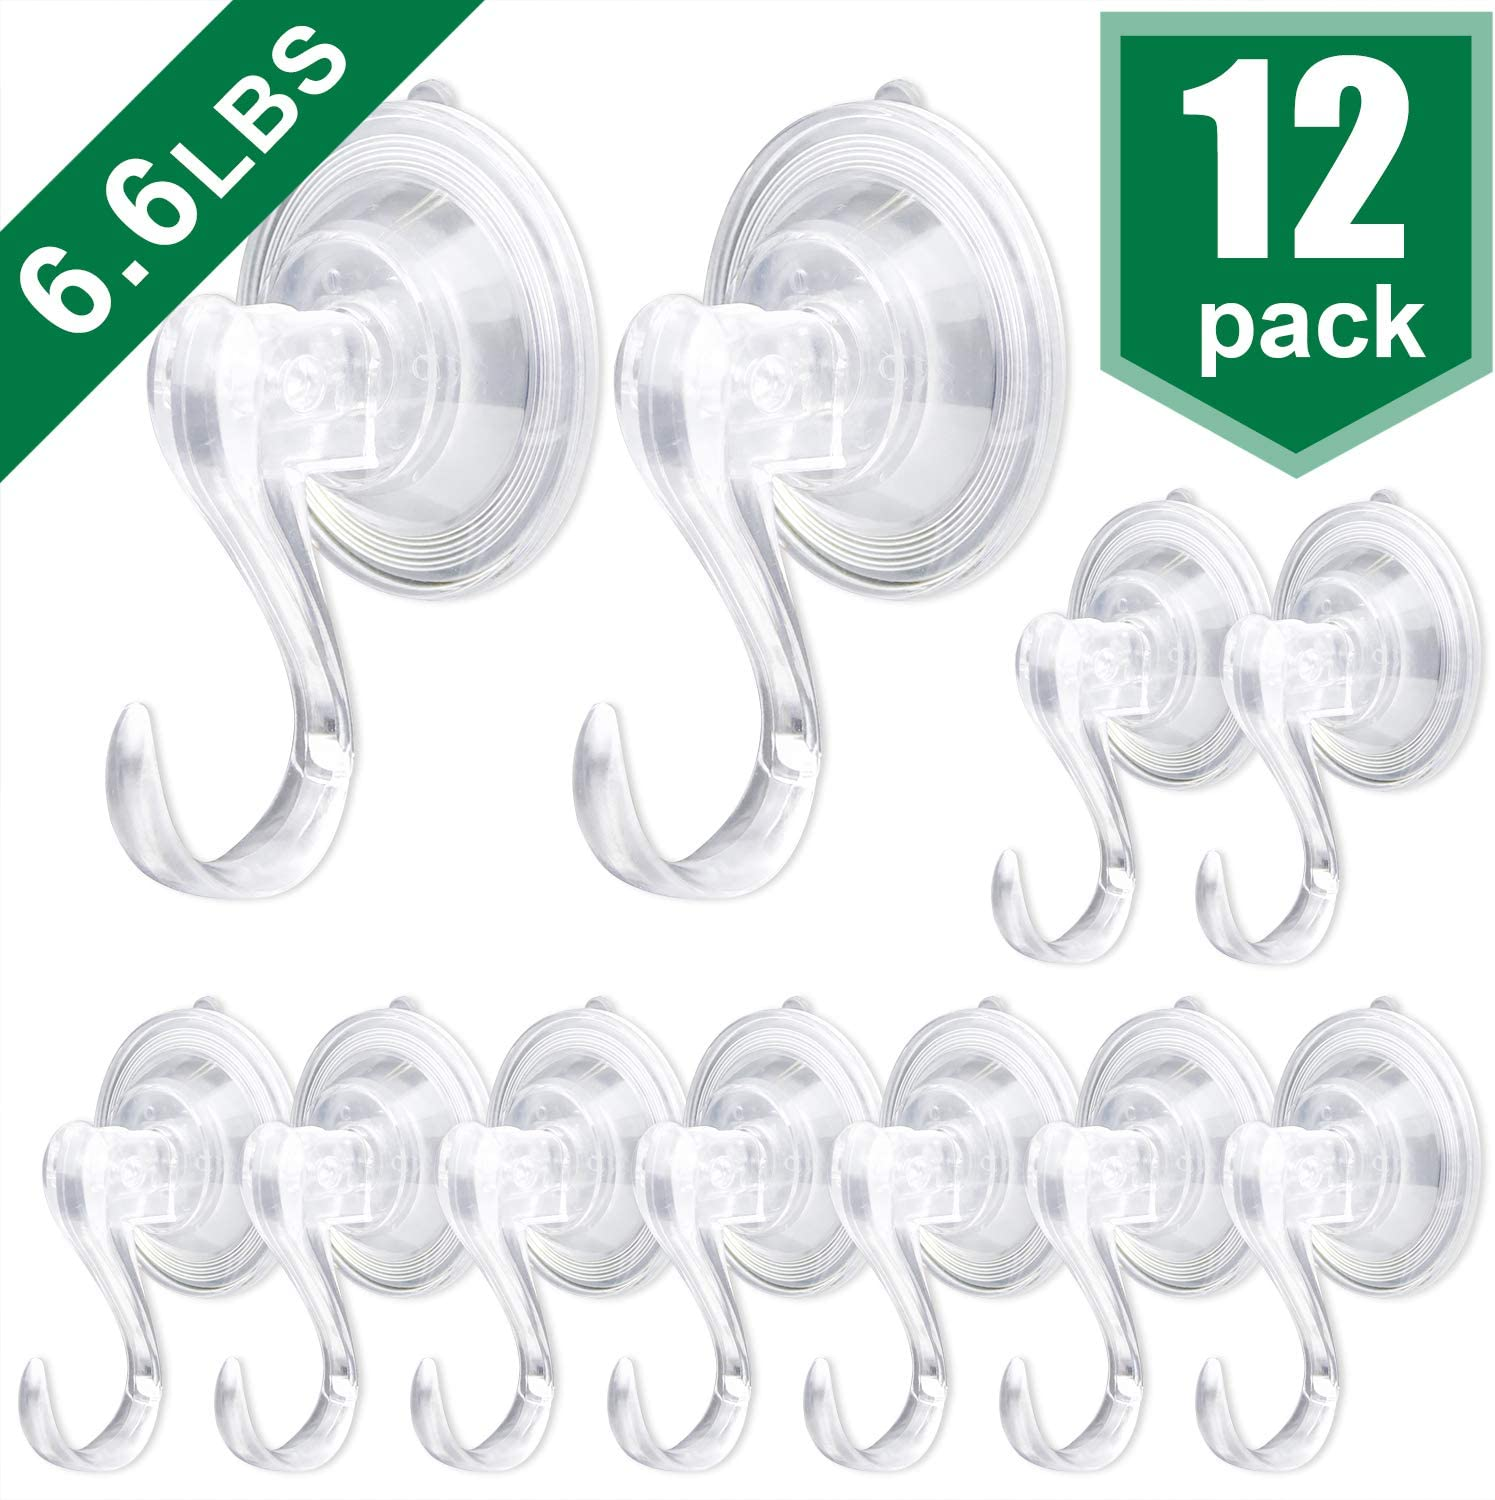 AROIC Suction Cup Hook, Movable Heavy-Duty Vacuum Suction Cup, with a Maximum Load of 6.6 Pounds, Adsorbed in Windows, Kitchens and Bathrooms, Hanging Towels, Clothing, etc. - 12 Pieces.